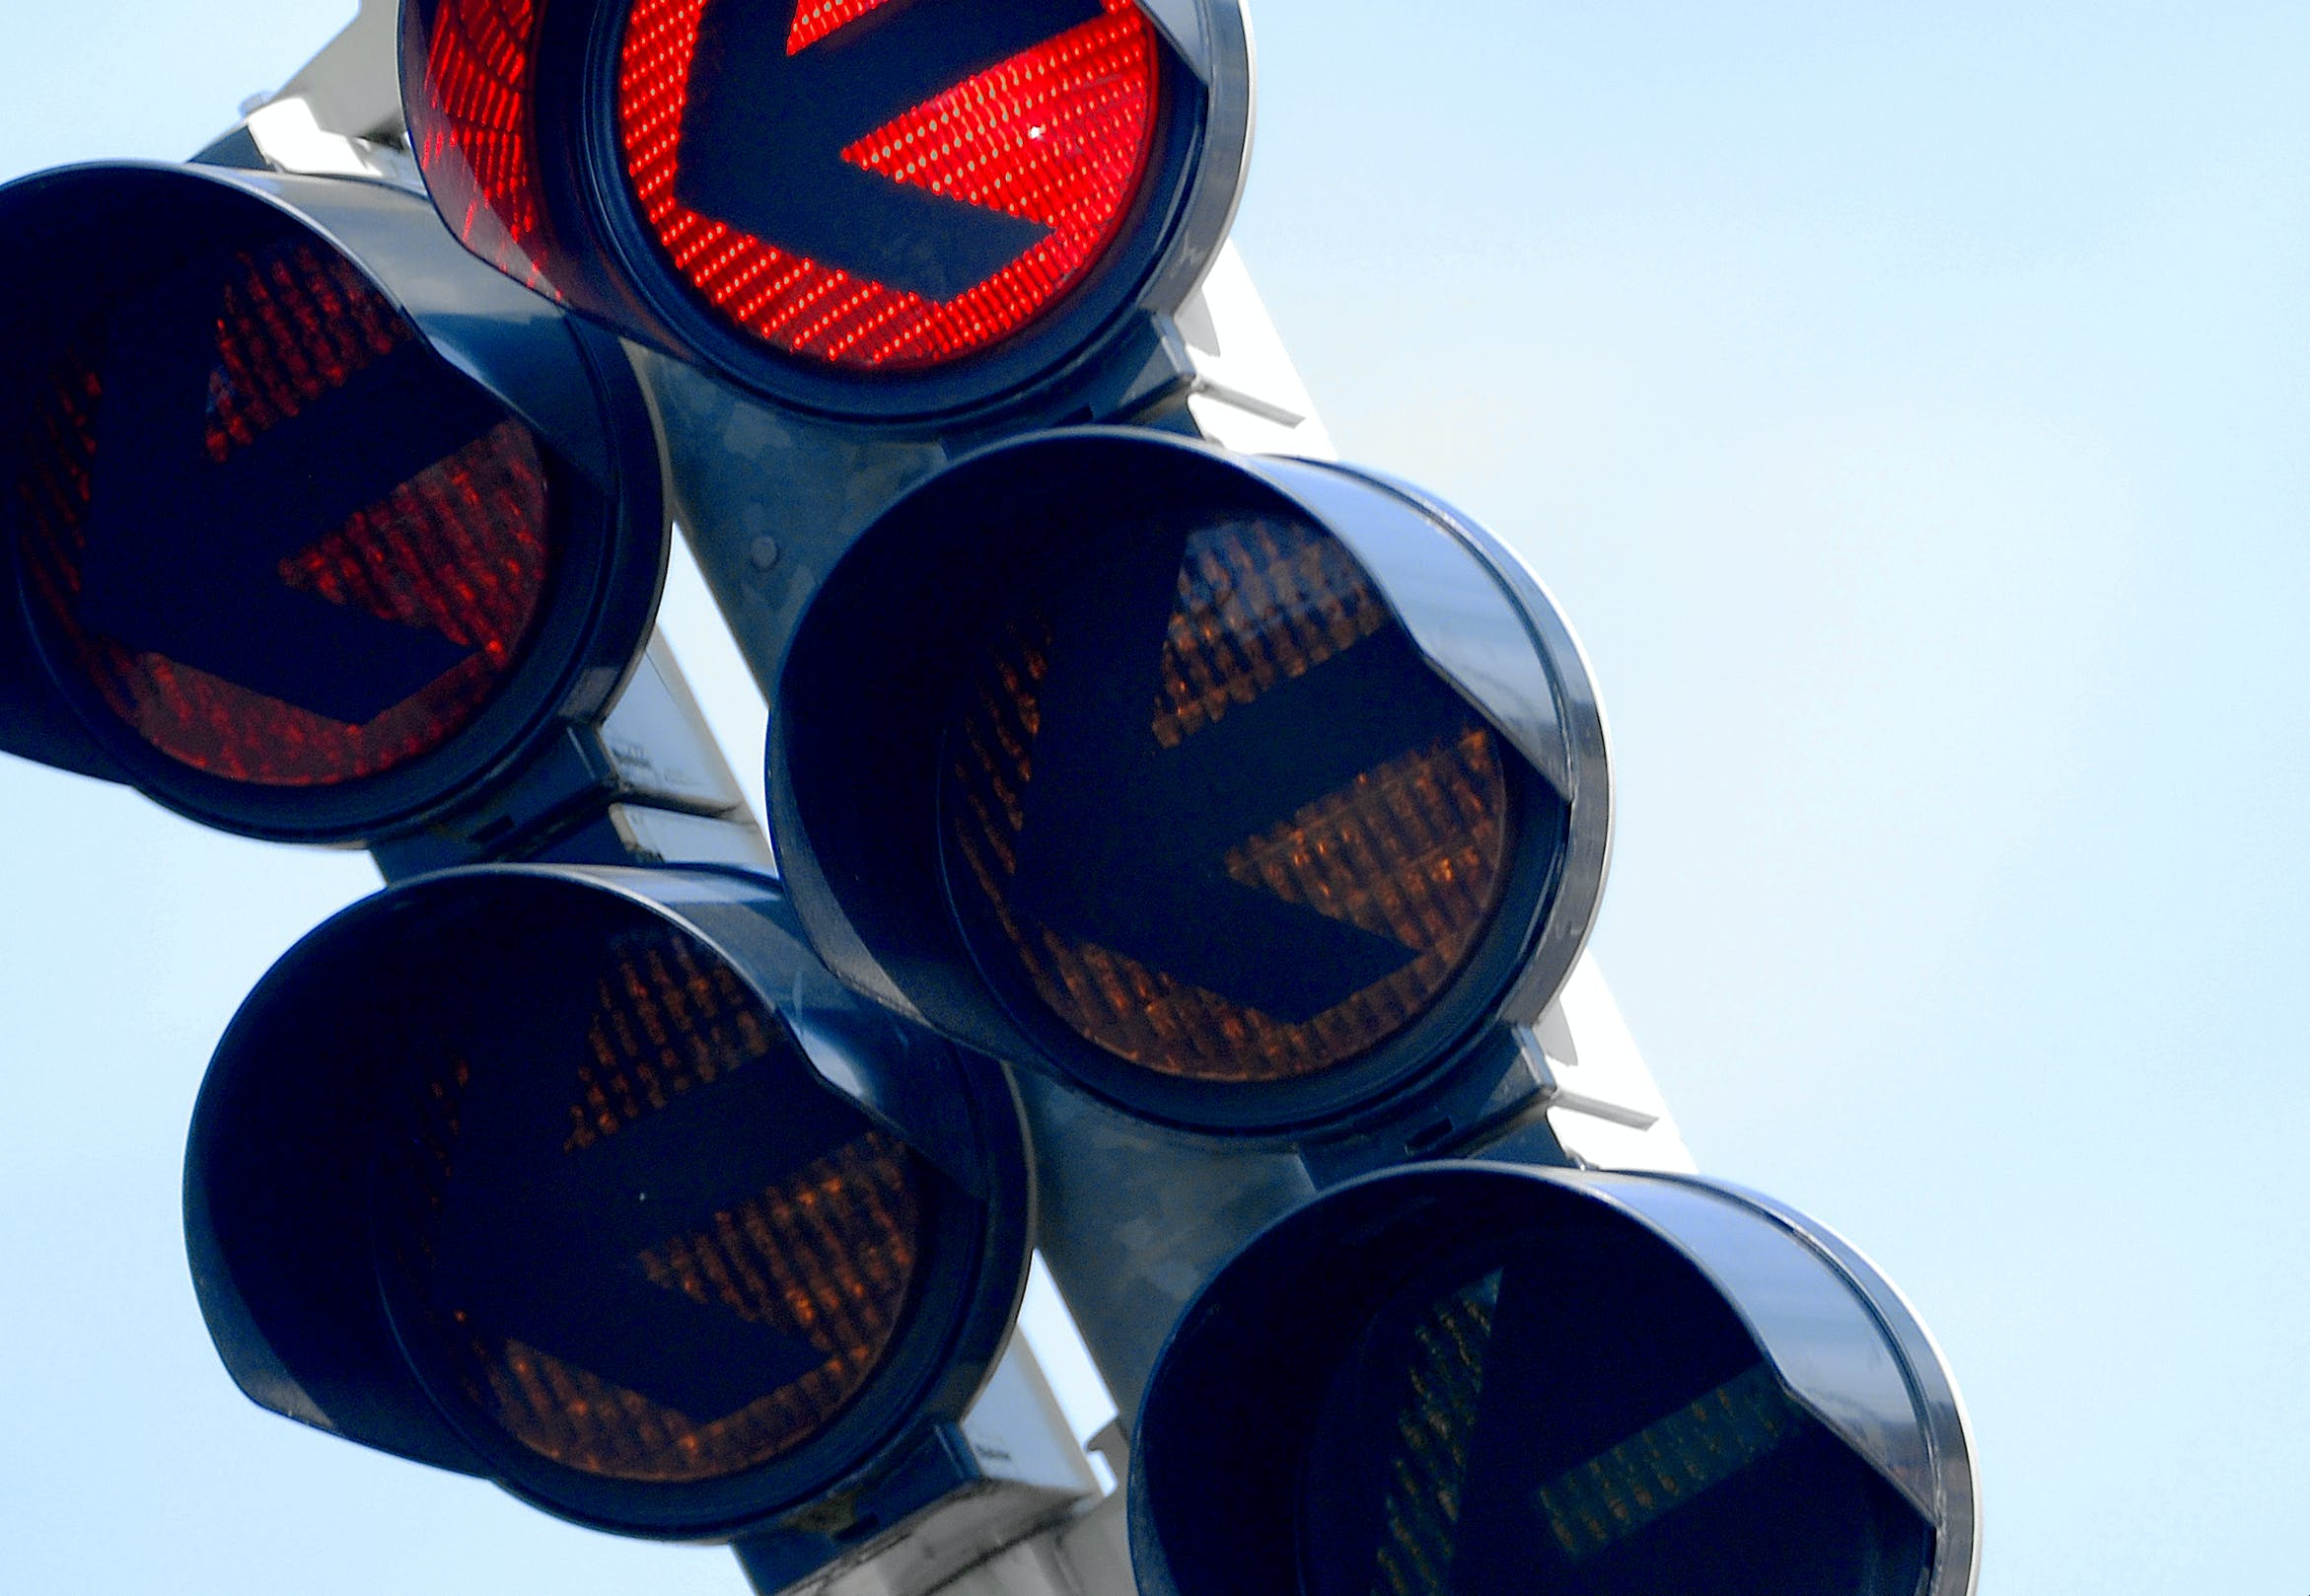 Free stock photo of lights, theme signs, traffic